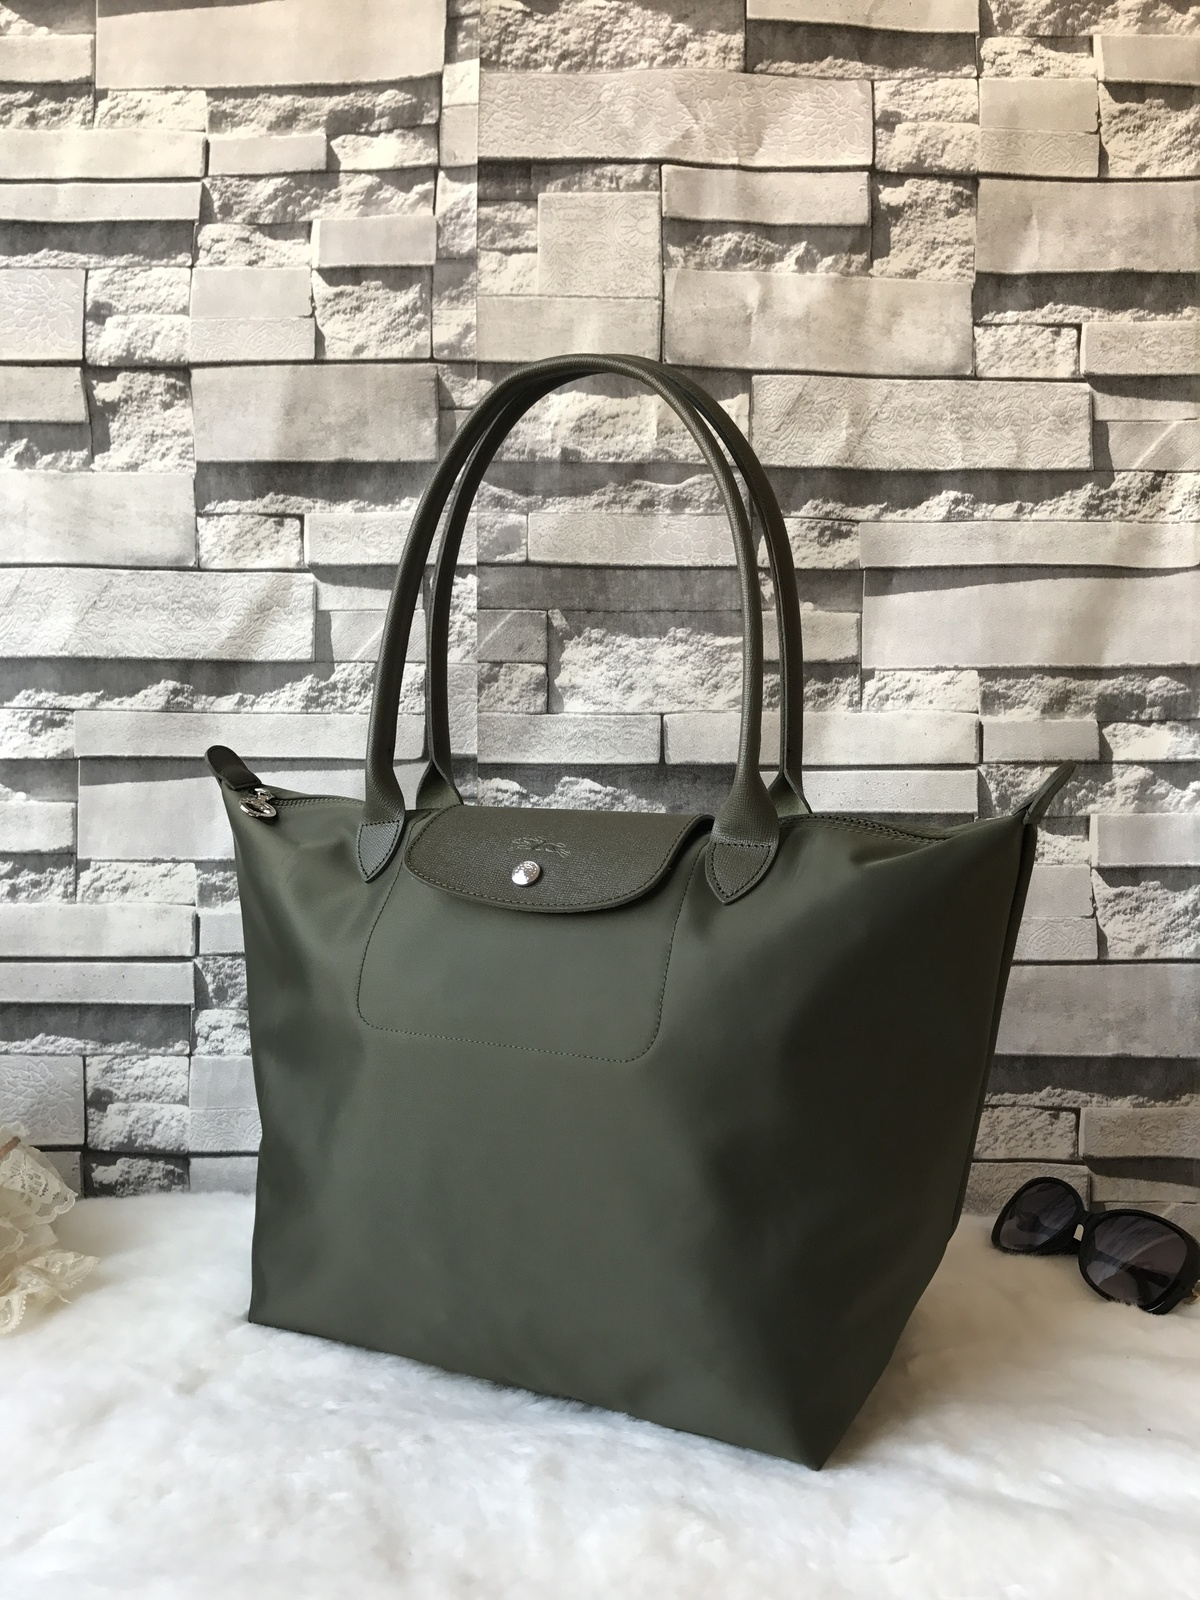 dbd56162dc09 Longchamp Le Pliage Handbag Neo Tote Large and 50 similar items